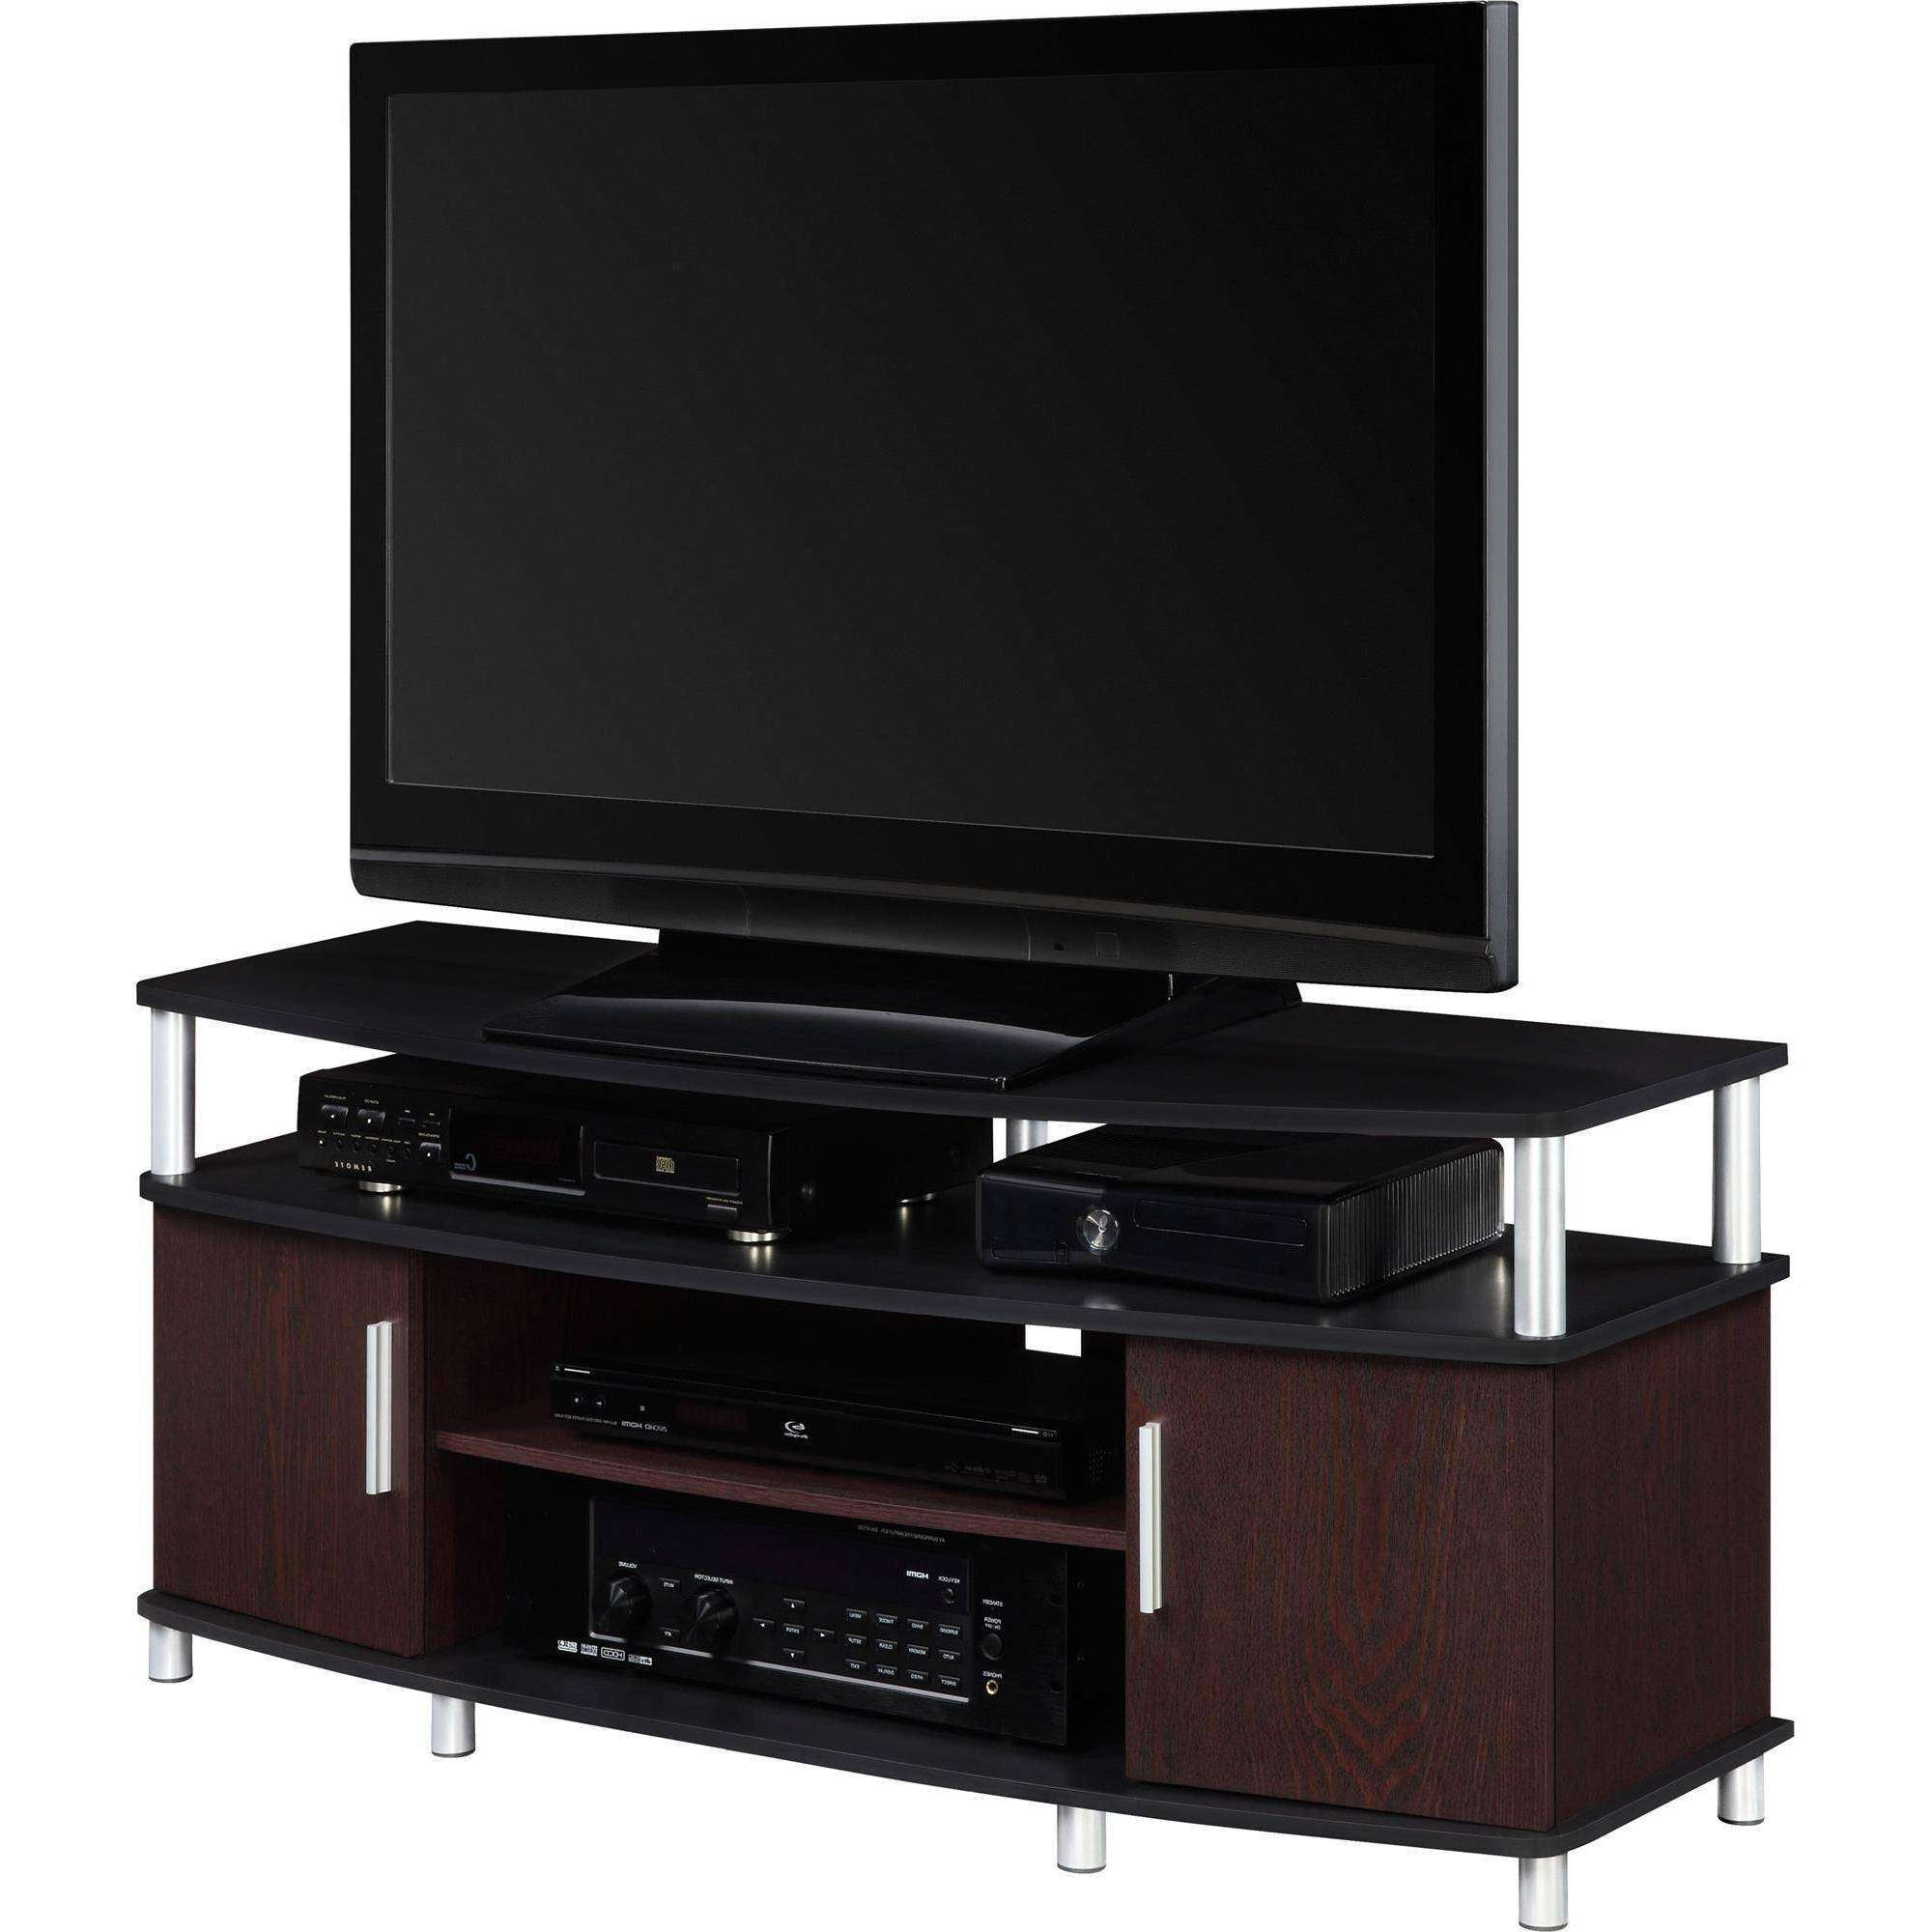 Great Corner Tv Stands For 50 Inch Tv 61 In Interior Decor Home Pertaining To Corner Tv Stands For 50 Inch Tv (View 10 of 20)